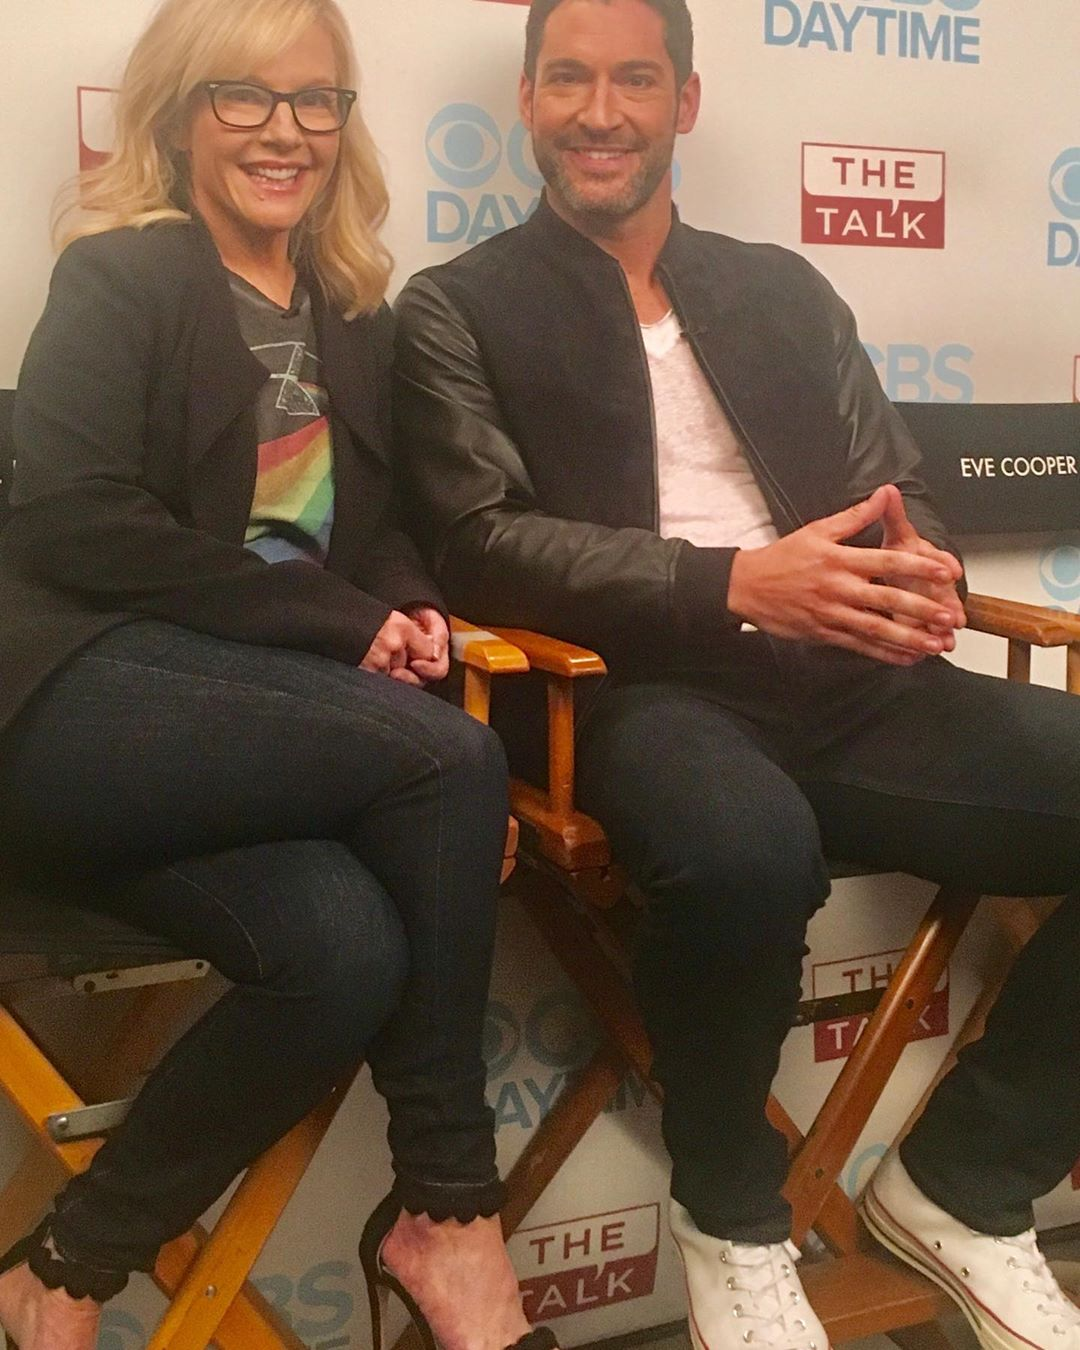 New Tom Ellis Bts Pictures And Videos Lucifer Season 4: New Videos And Pictures Of Tom Ellis